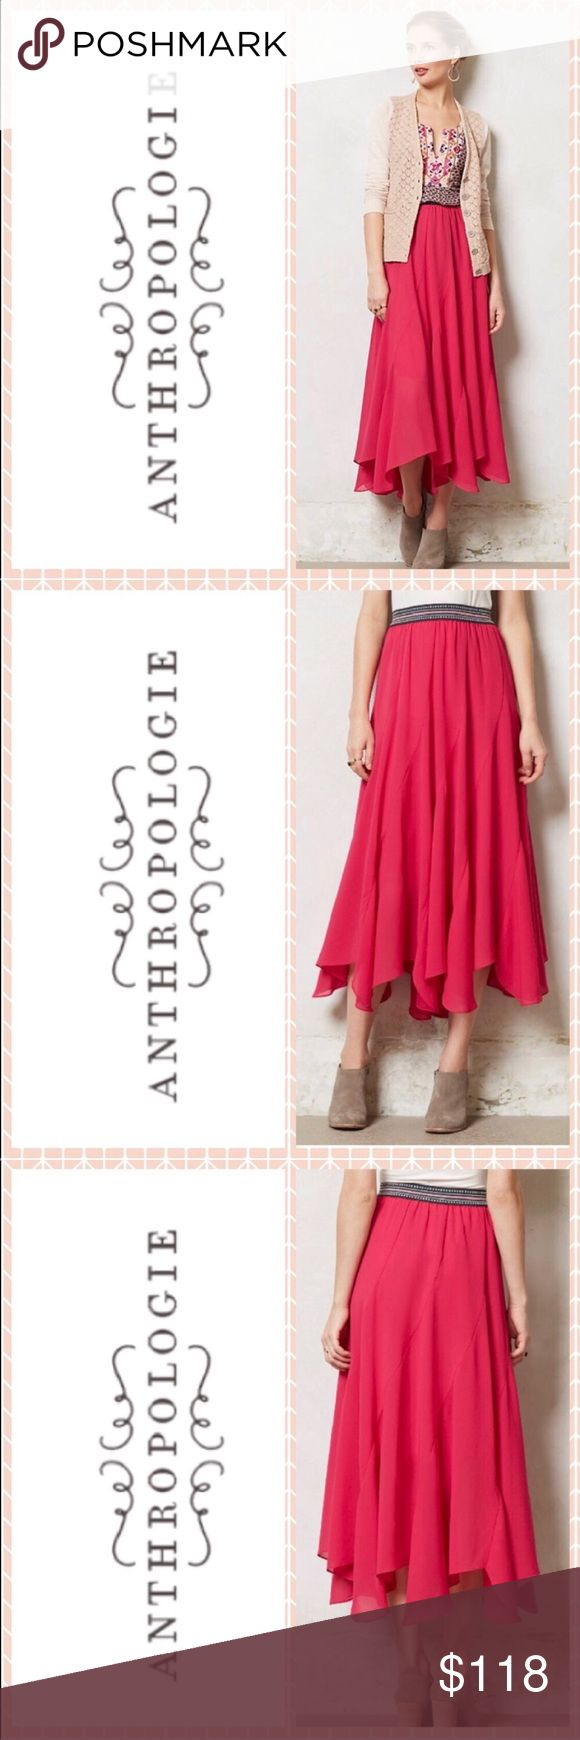 ✨LIKE NEW✨ Anthropologie maxi boho chiffon skirt ✨LIKE NEW✨ Anthropologie pink maxi boho chiffon skirt by designer Vanessa Virginia. This fully lined skirt gets so many compliments when worn thanks to its flows feel and vibrant magenta pink hue. The one and only bohemian festival skirt you will ever need! Perfect for summer to fall weddings, baby showers, Coachella, music festivals and more! Anthropologie Skirts Maxi